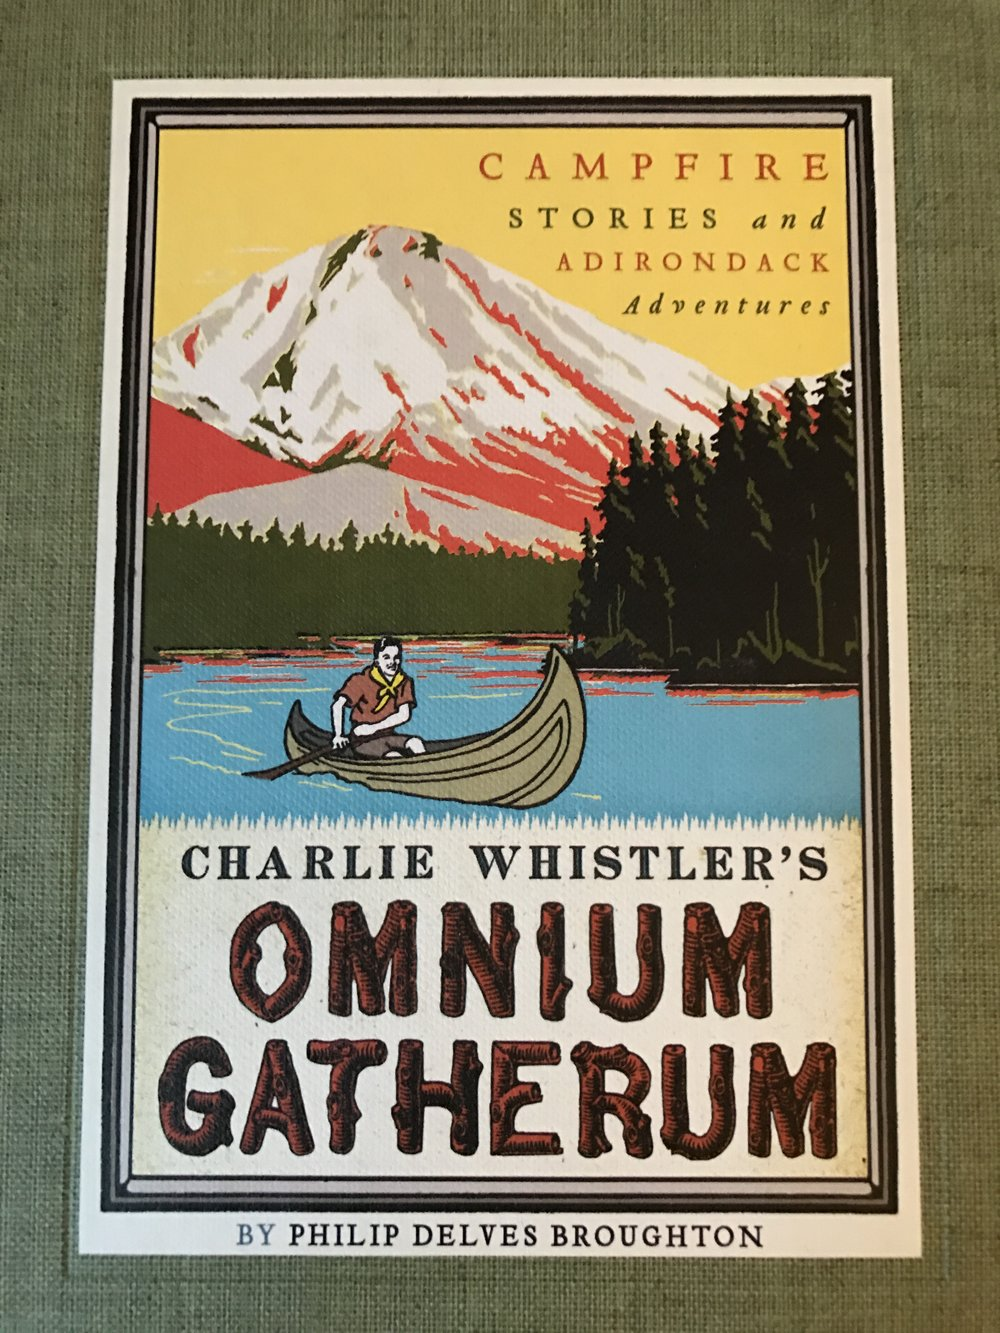 Wonderful stories about generations of Whistlers and their cabin on Requite Lake